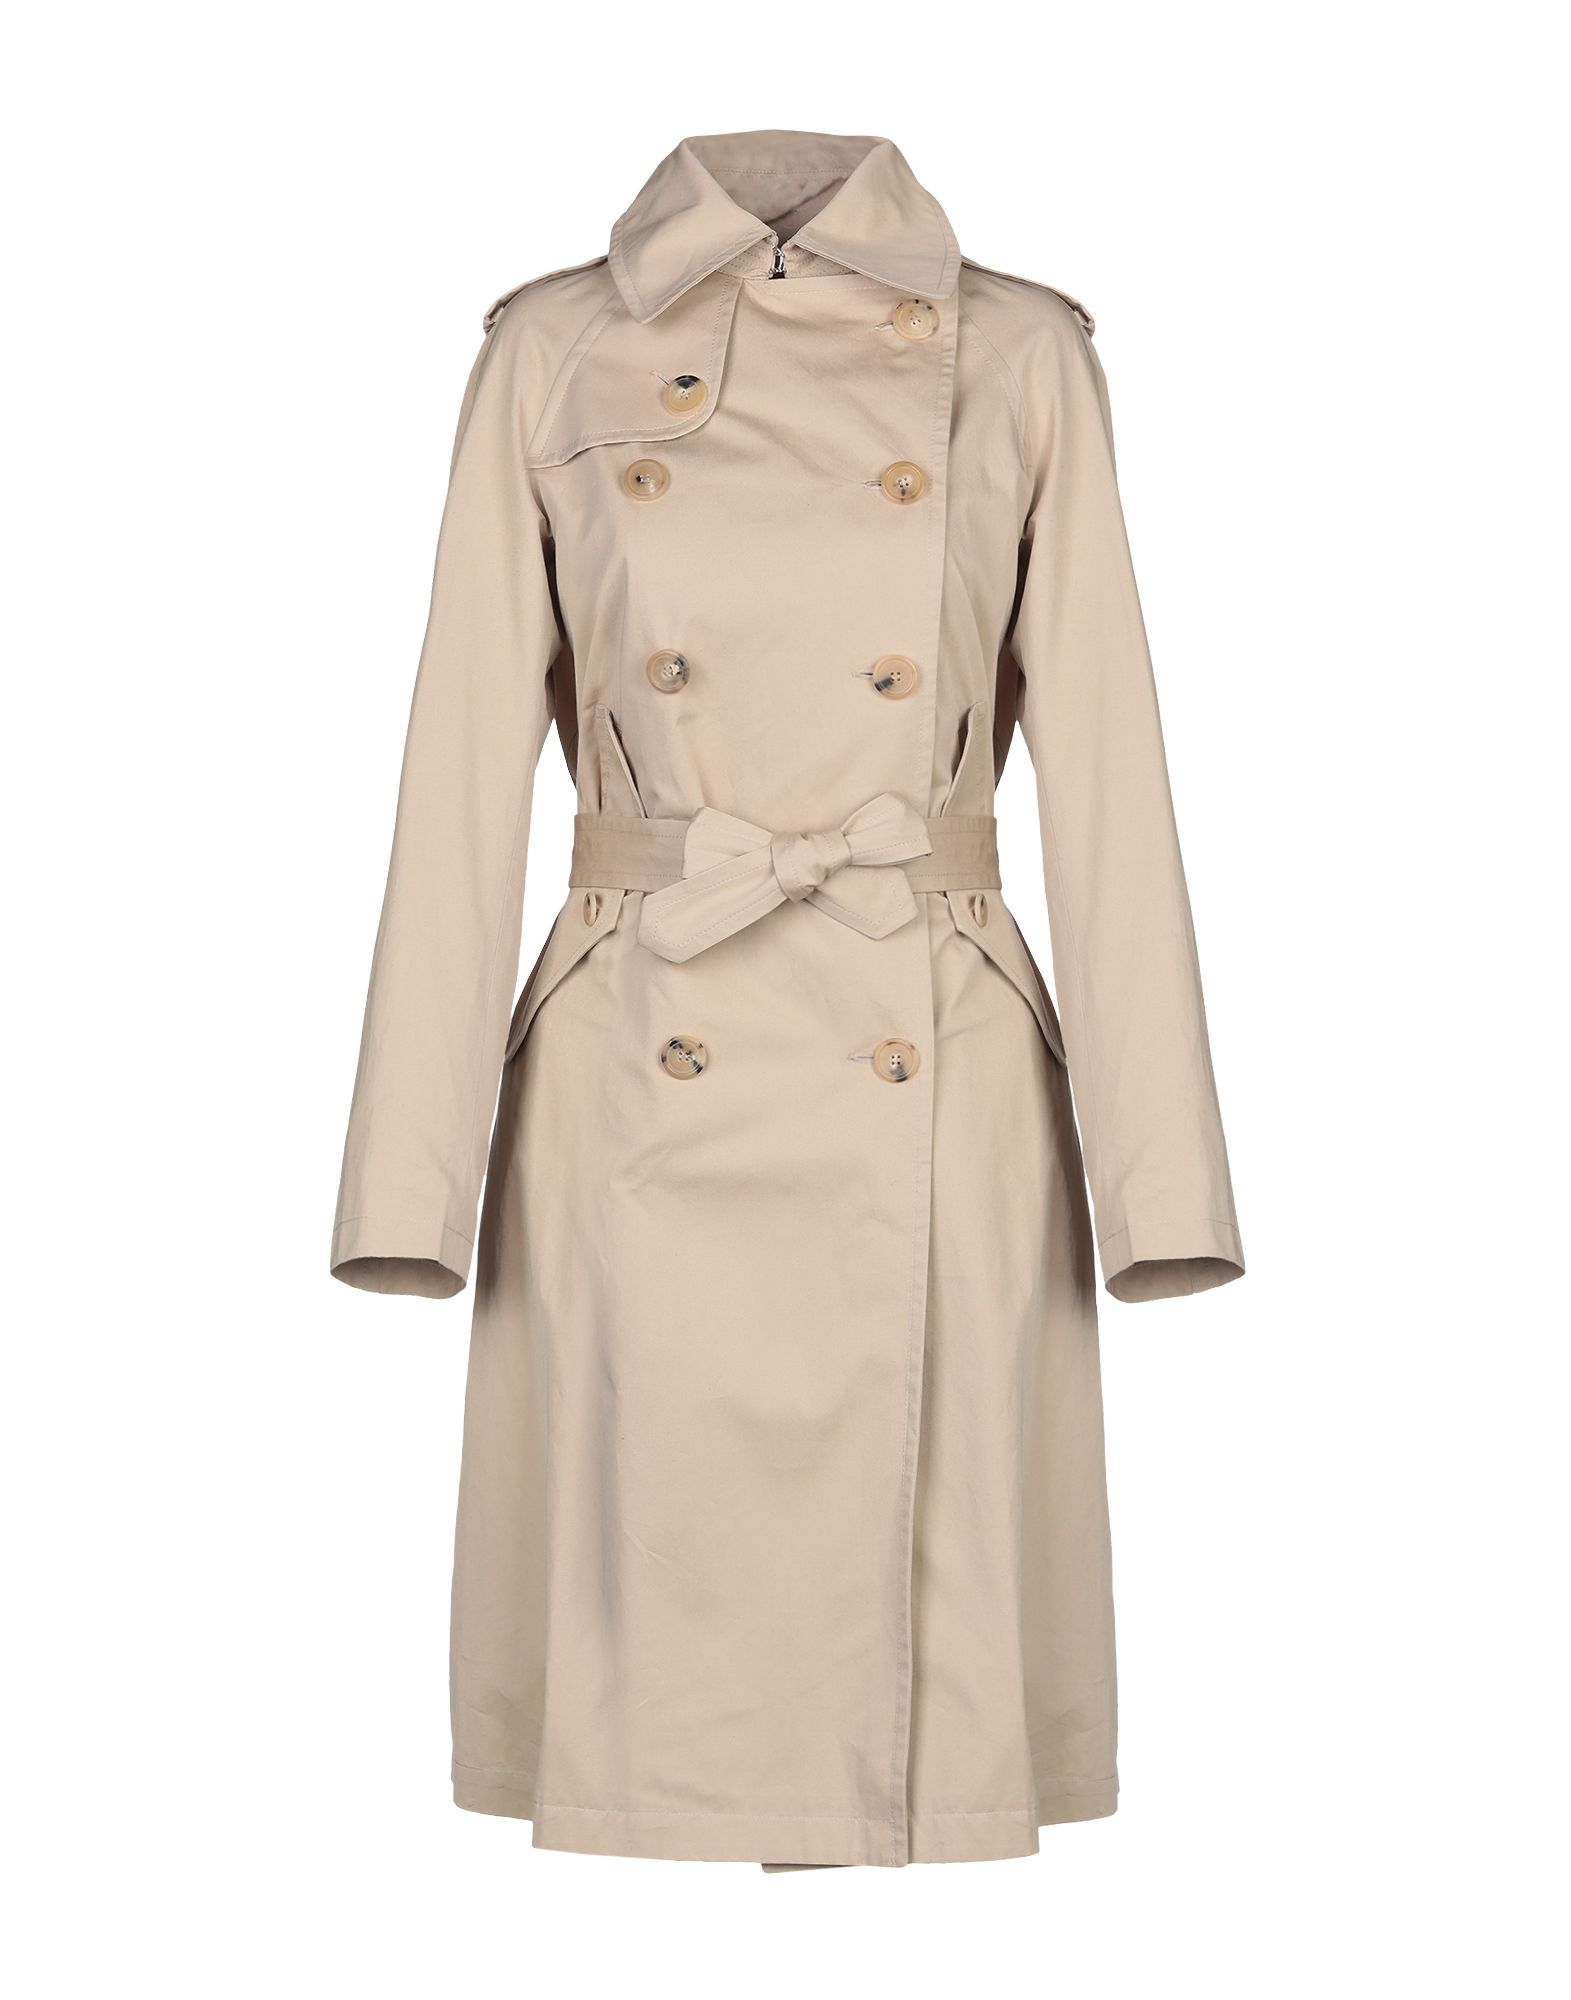 Sandro Full-Length Jacket In Beige